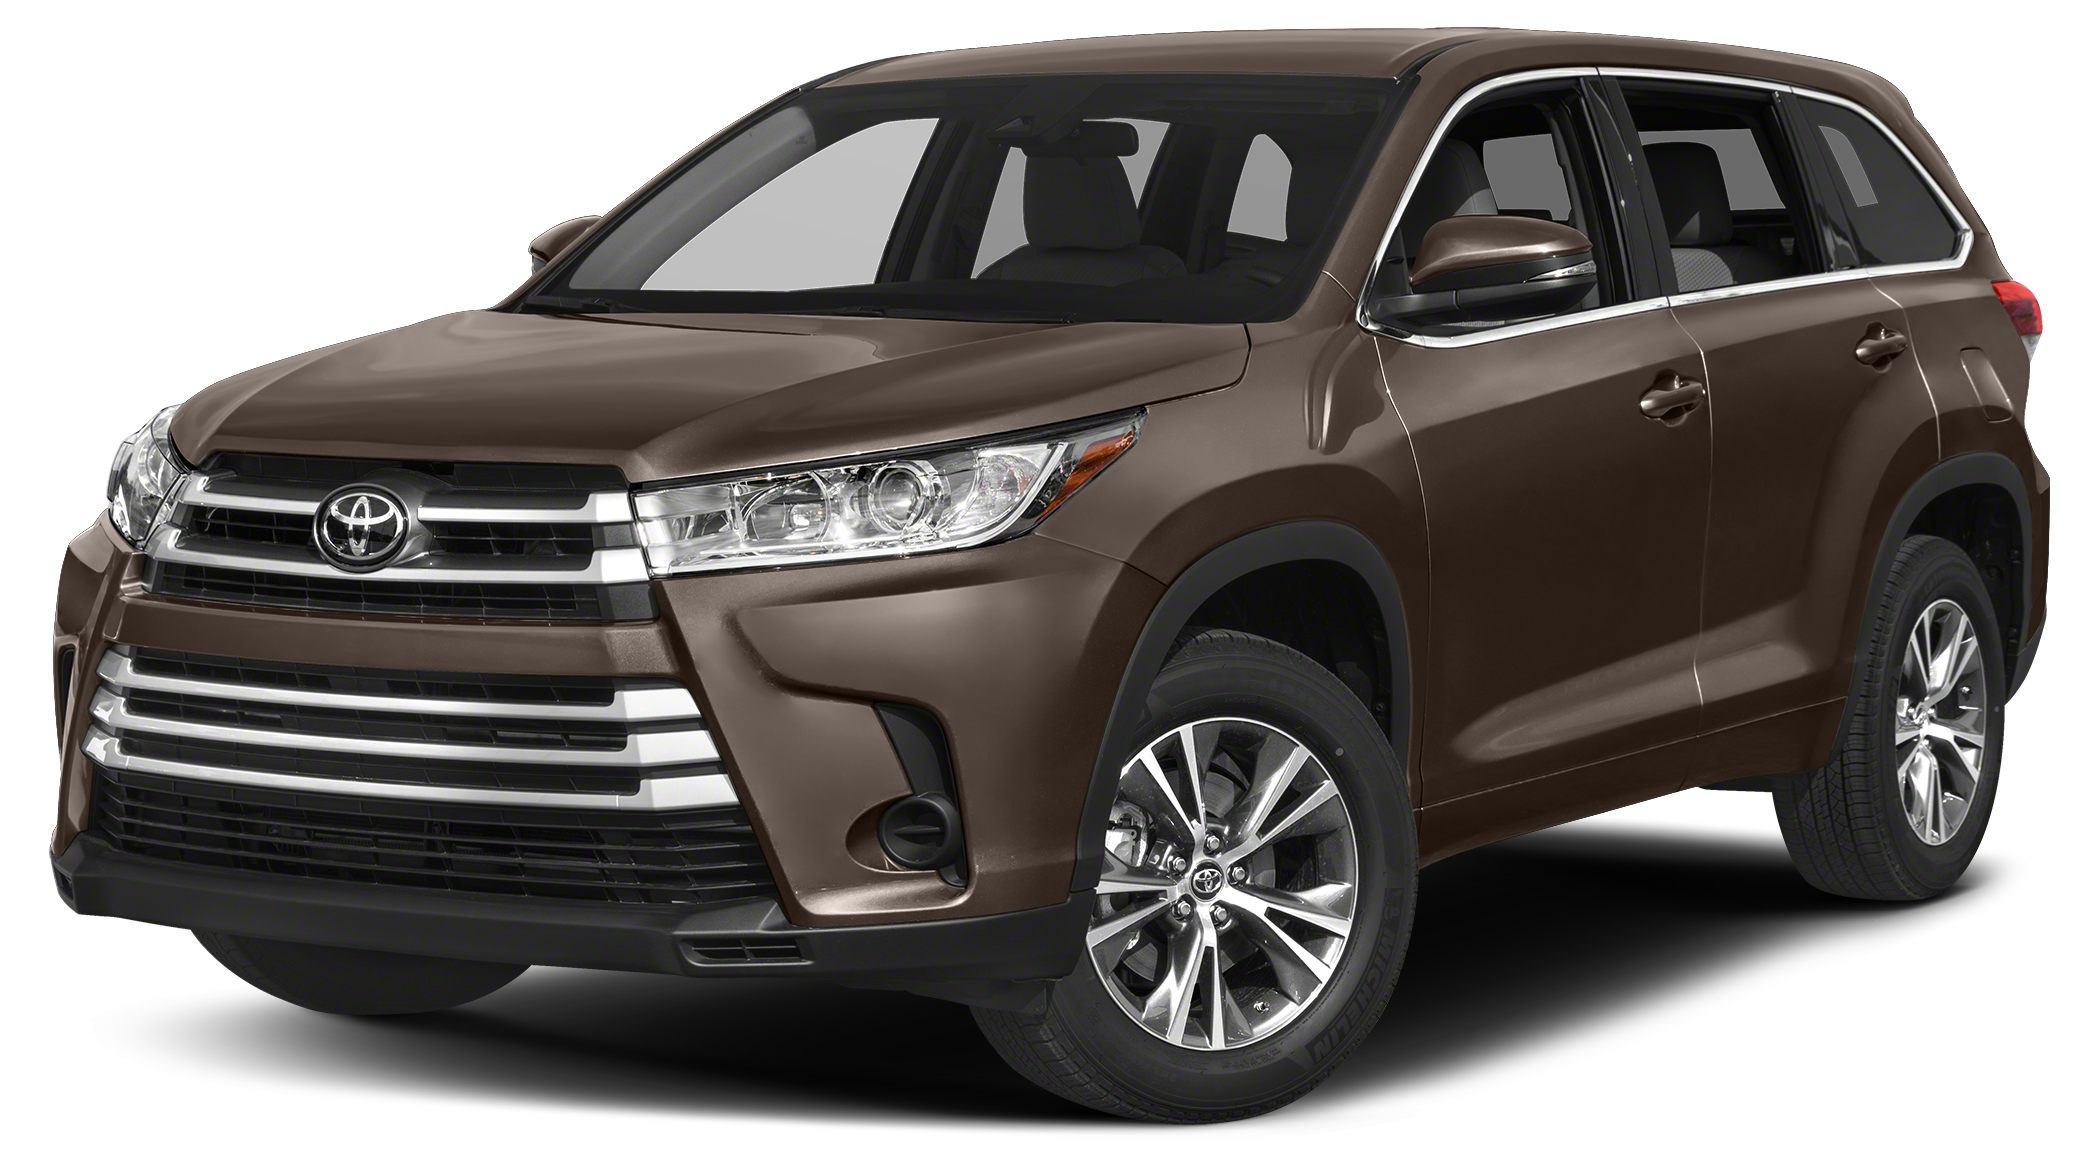 2017 Toyota Highlander  Miles 12Color Toasted Walnut Pearl Stock TT4736 VIN 5TDZZRFH6HS22839